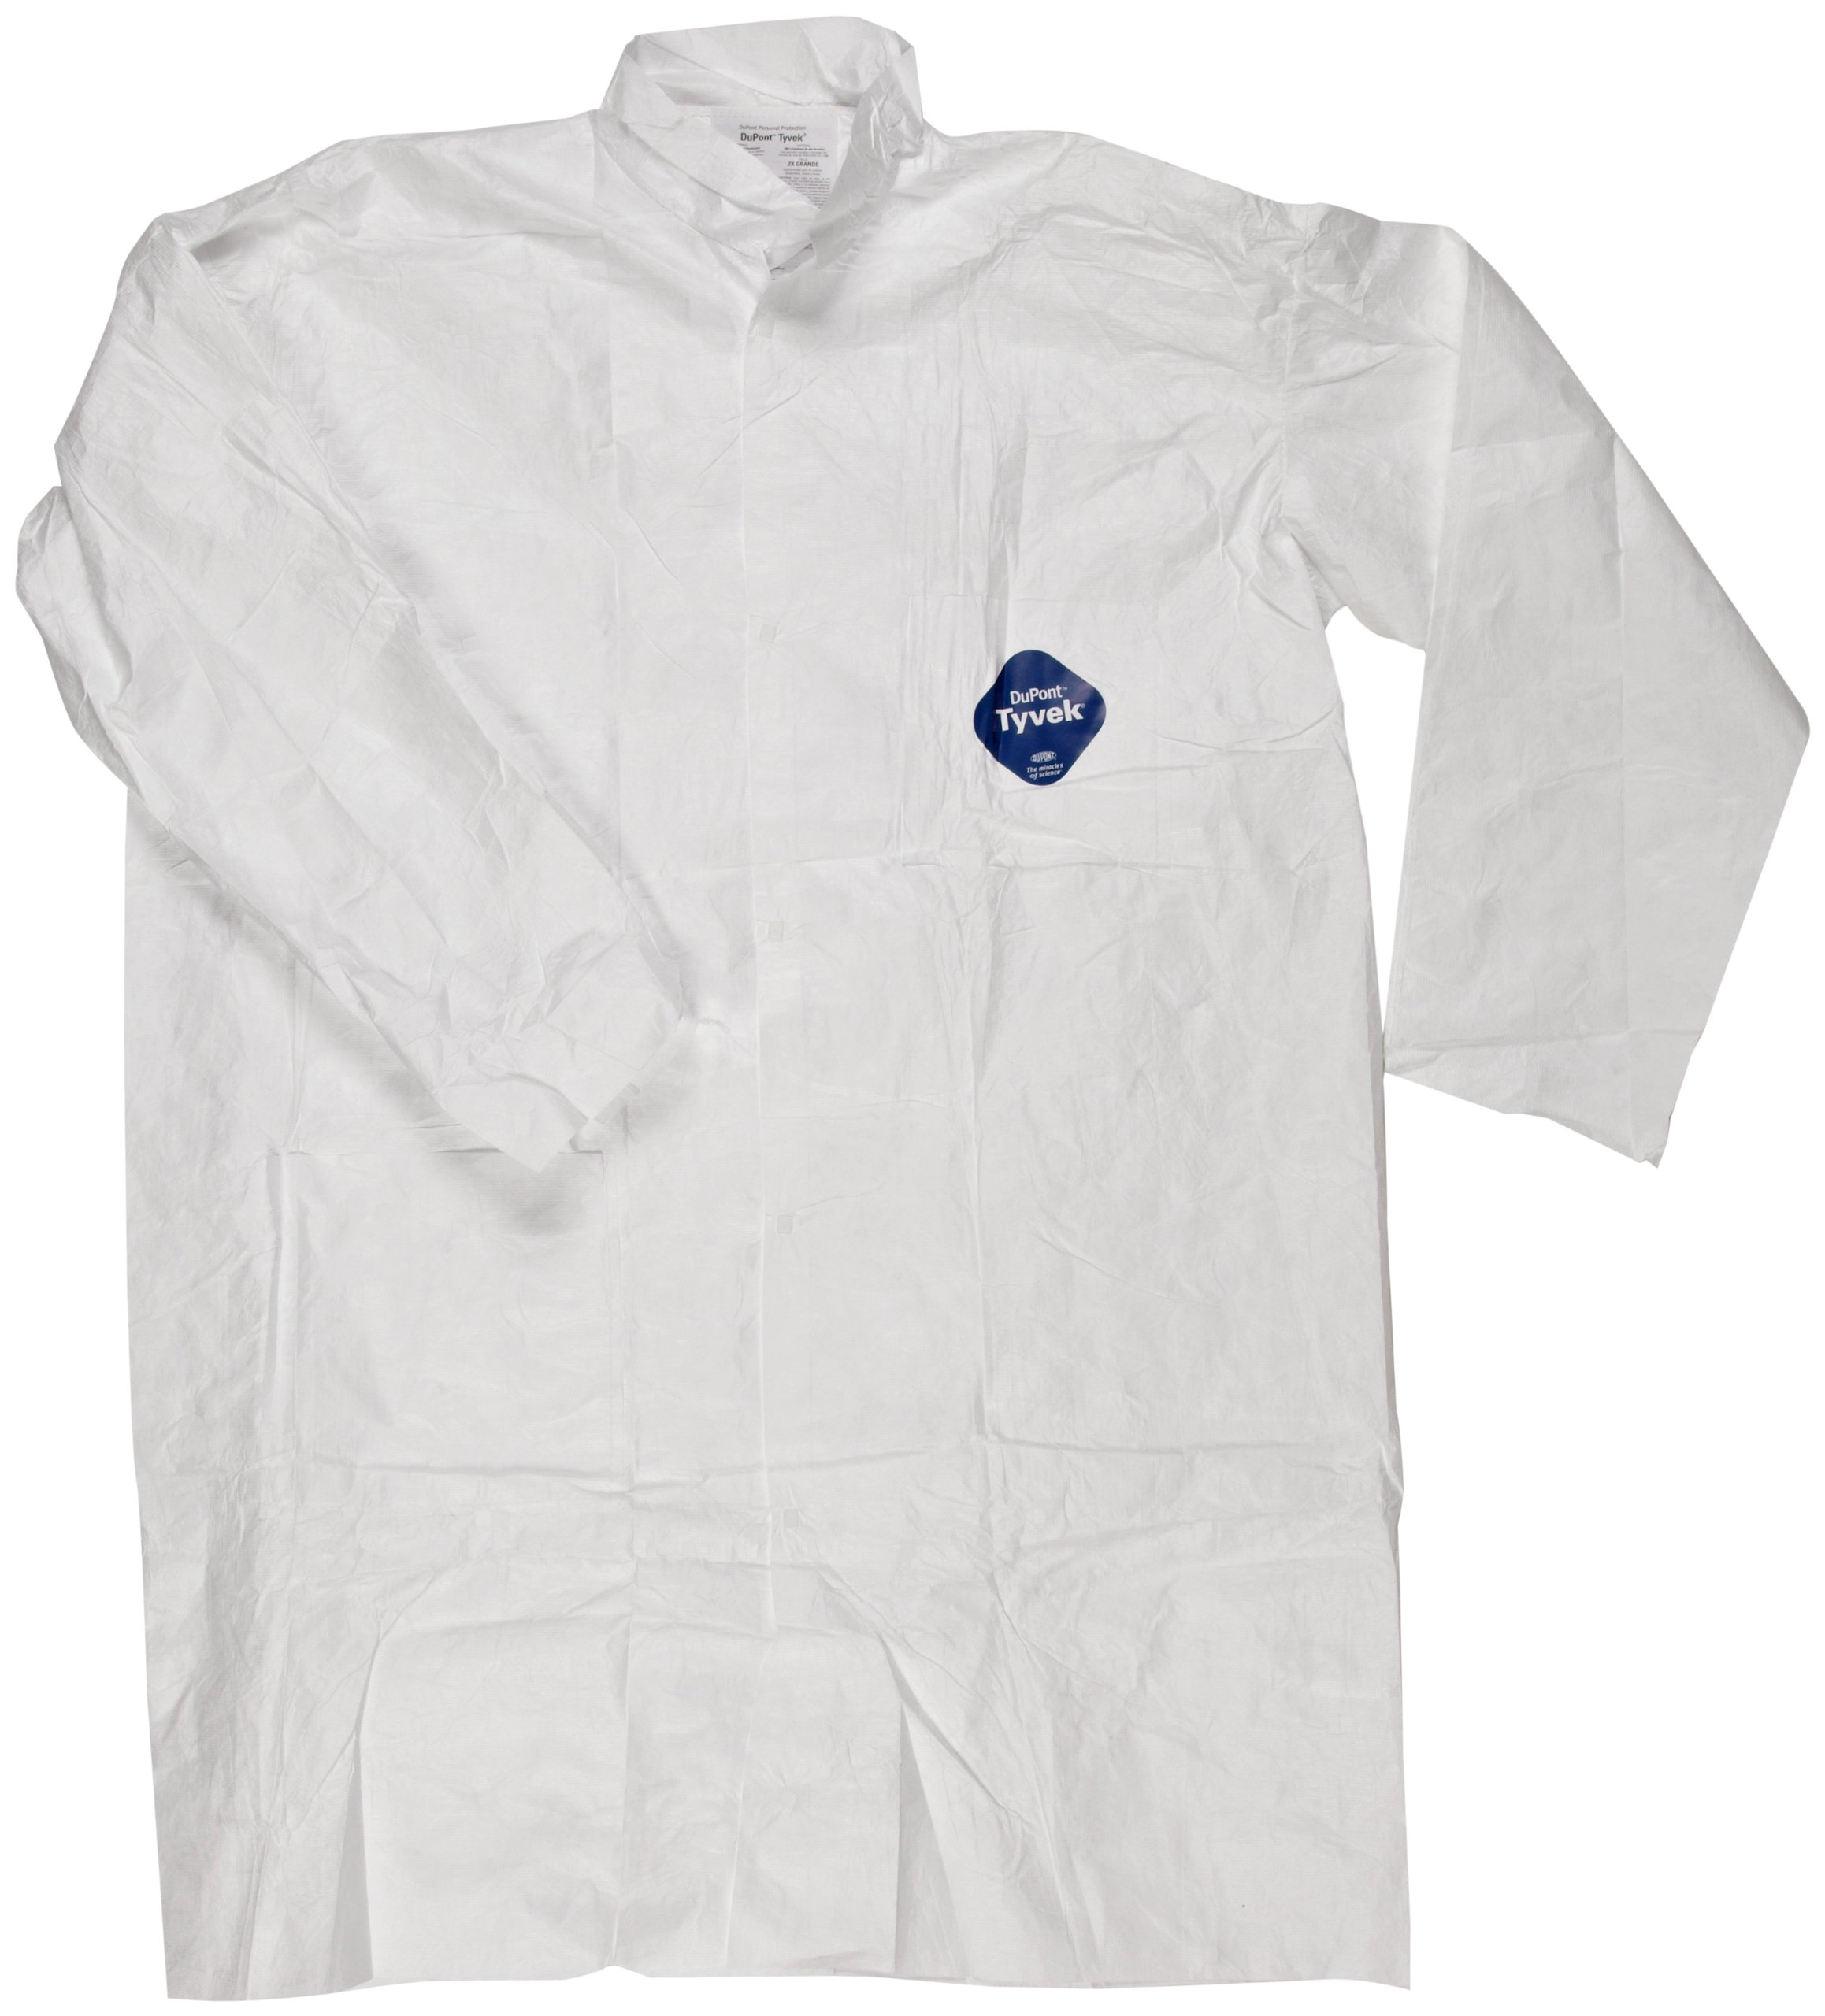 Magid C115XXL EconoWear Tyvek Disposable Lab Coat with Collar and Two Patch Pockets, 2XL, White  (Case of 30)